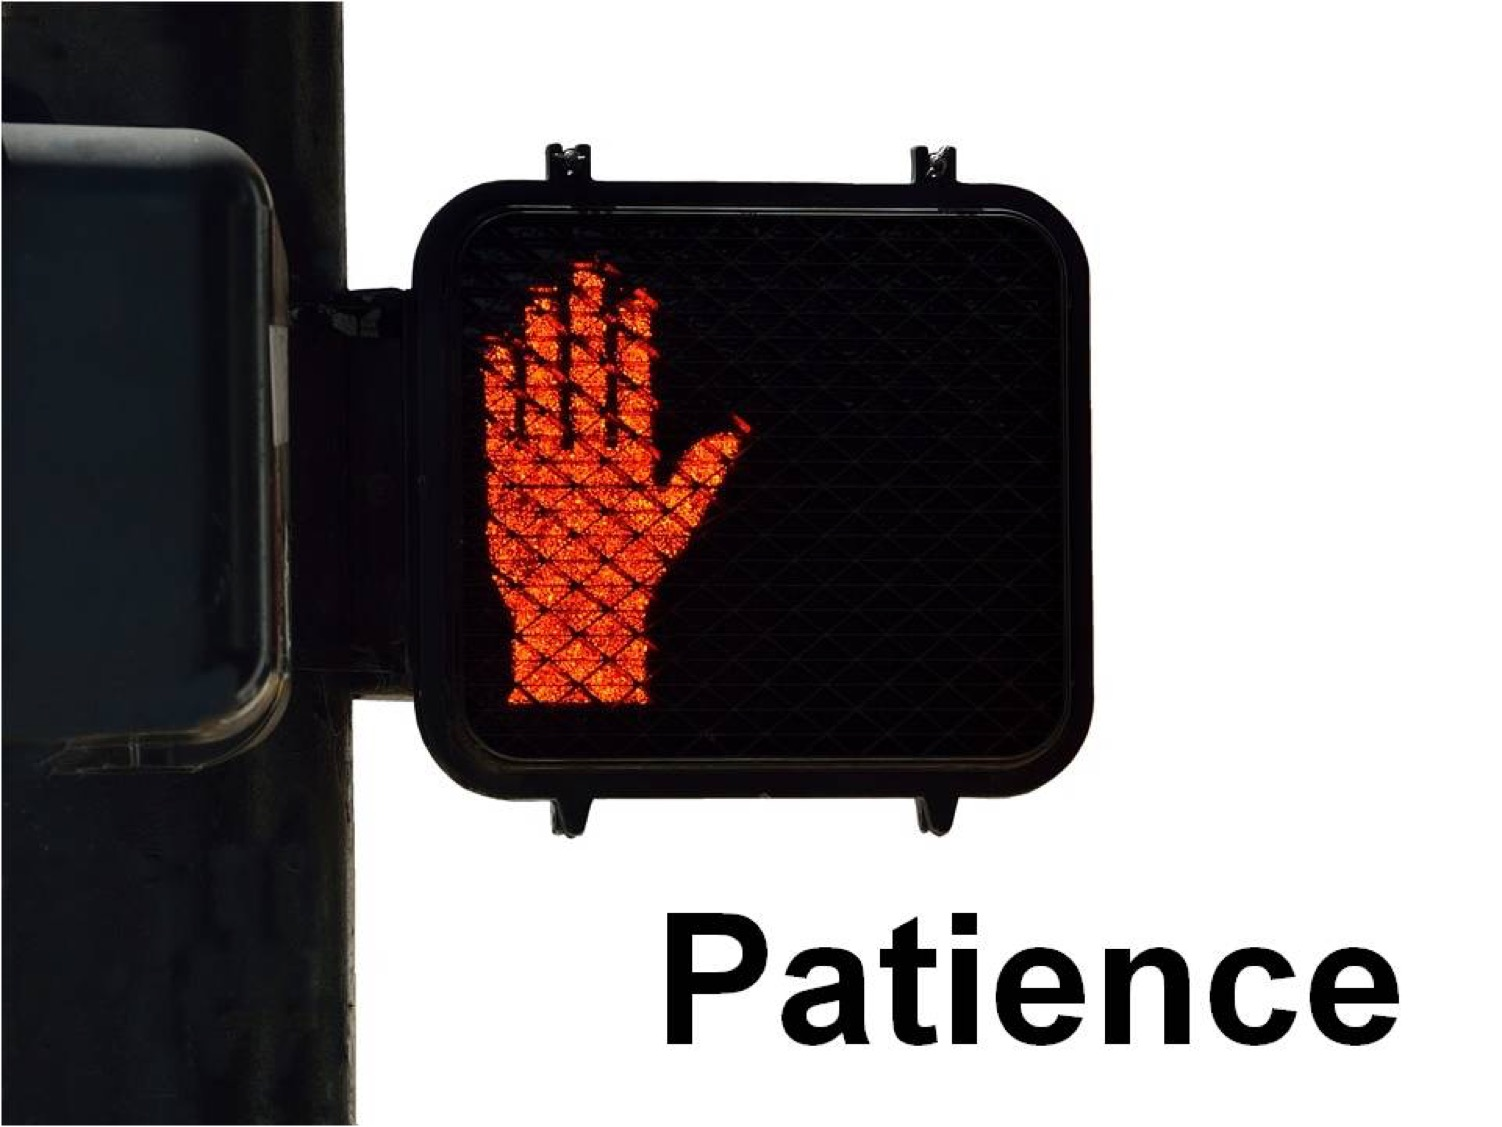 Picture of a pedestrian crossing caution light with the word 'Patience' underneath it.